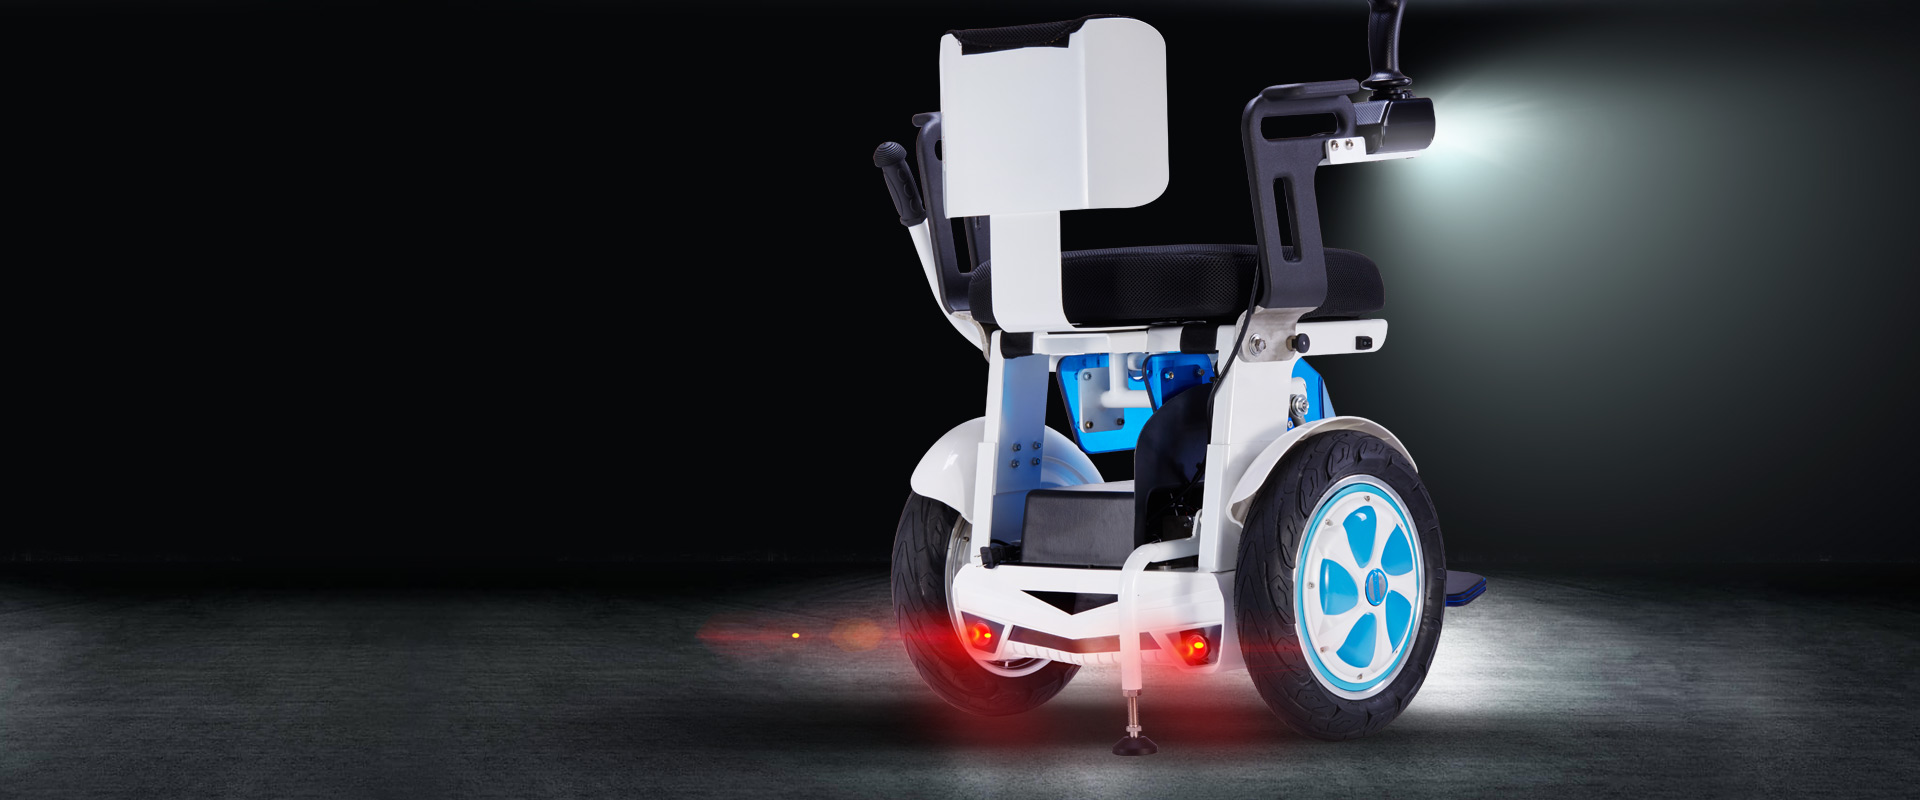 Airwheel A6S lightweight balance wheelchair